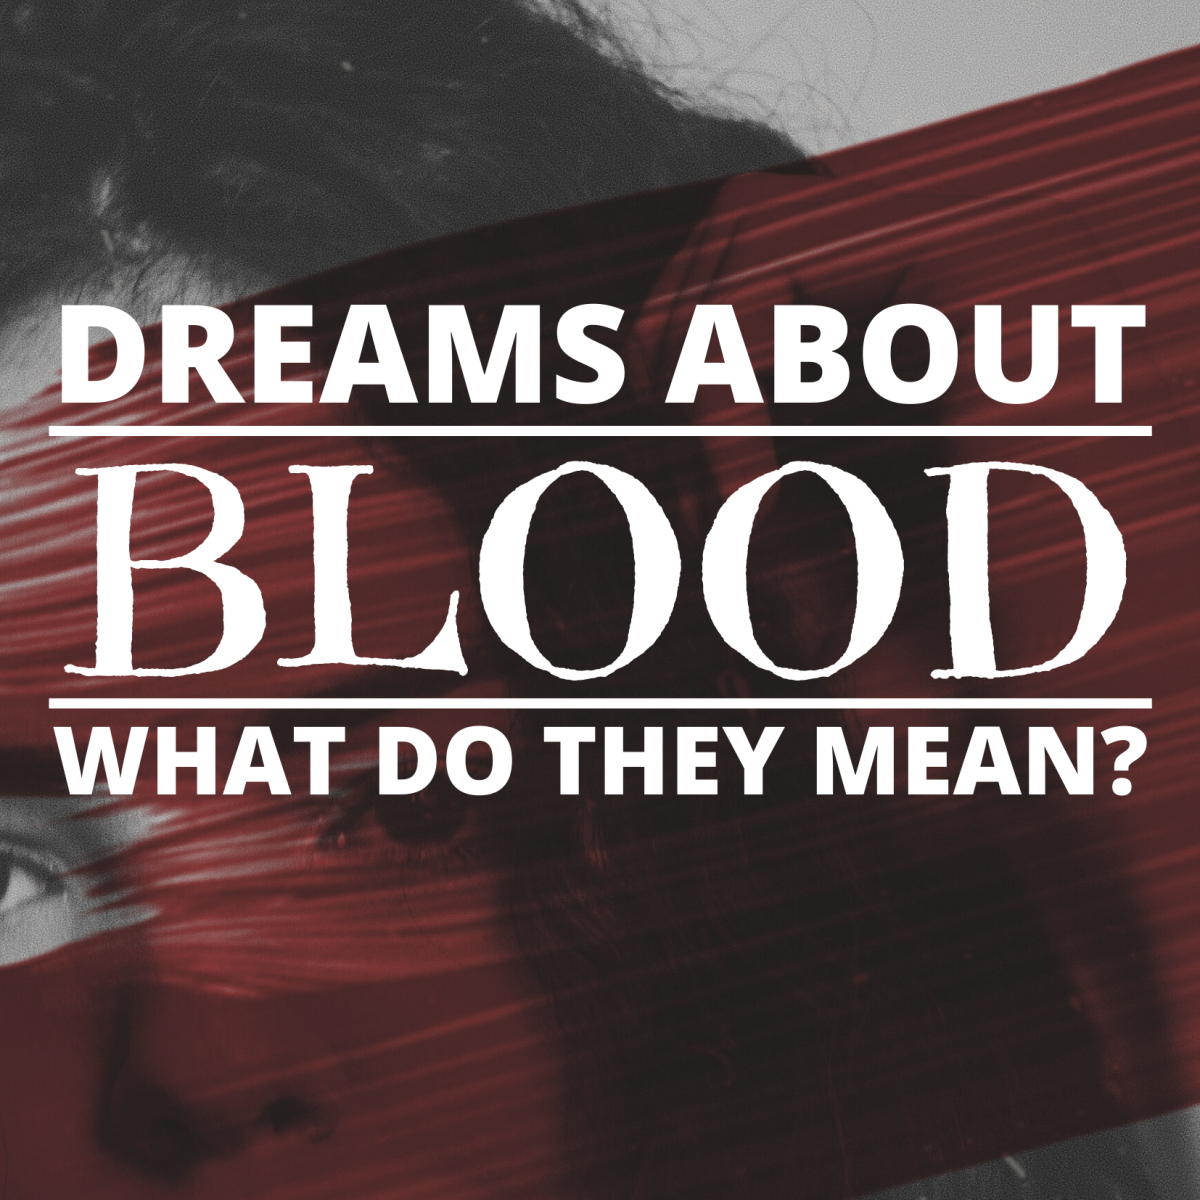 Seeing blood in your dreams can be startling, but what does it mean? Here are seven interpretations of blood as a dream symbol.